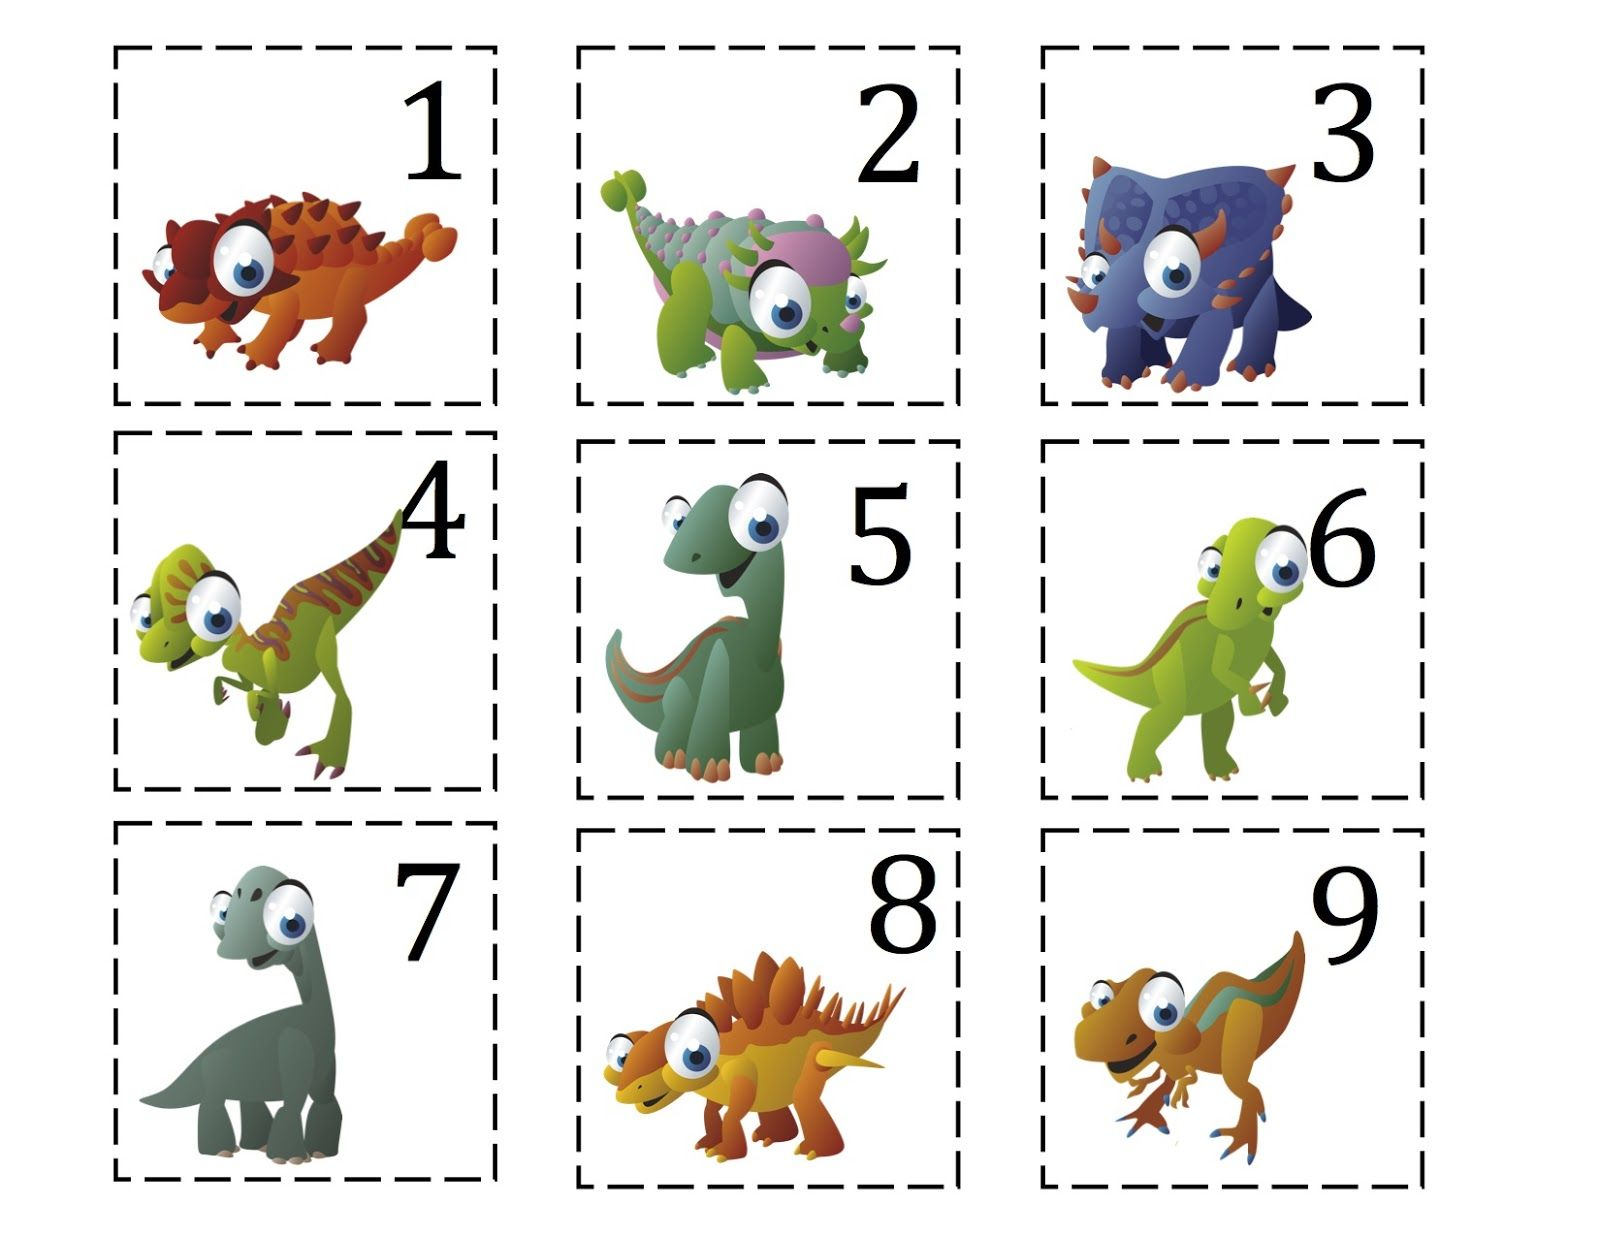 ten terrible dinosaurs printable baby learning dinosaur printables dinosaur theme preschool. Black Bedroom Furniture Sets. Home Design Ideas